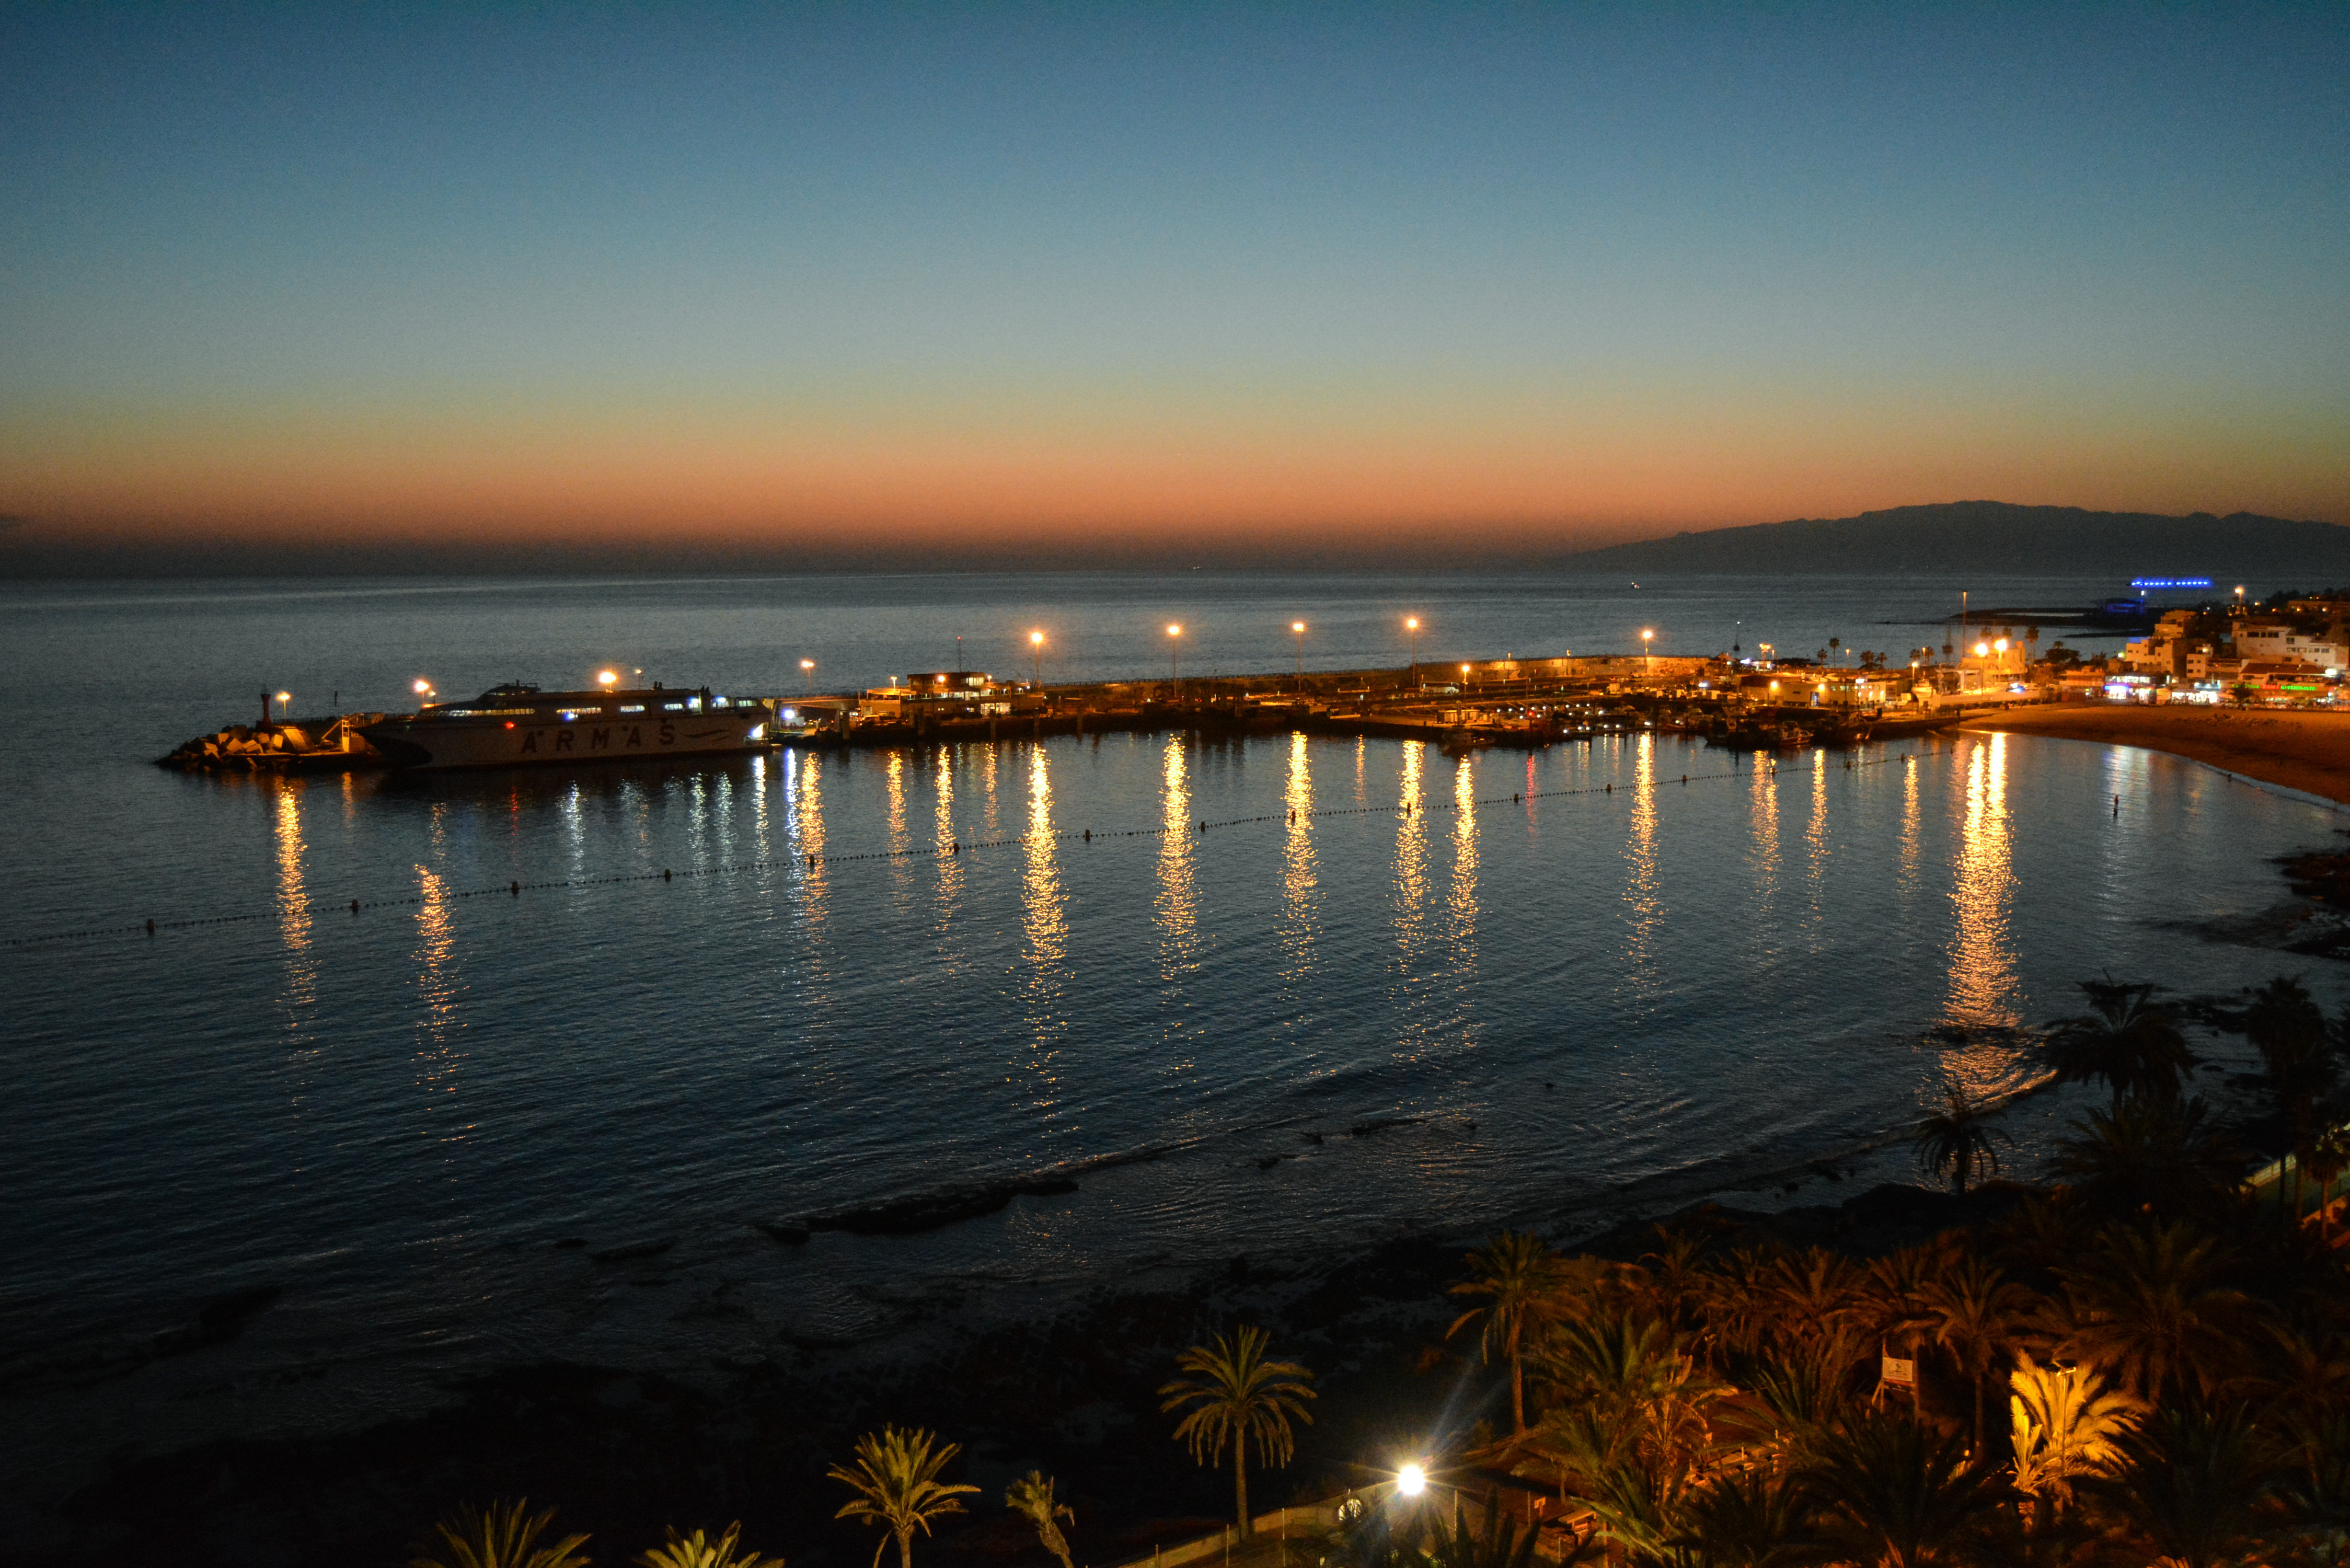 Los Cristianos Harbor in the evening